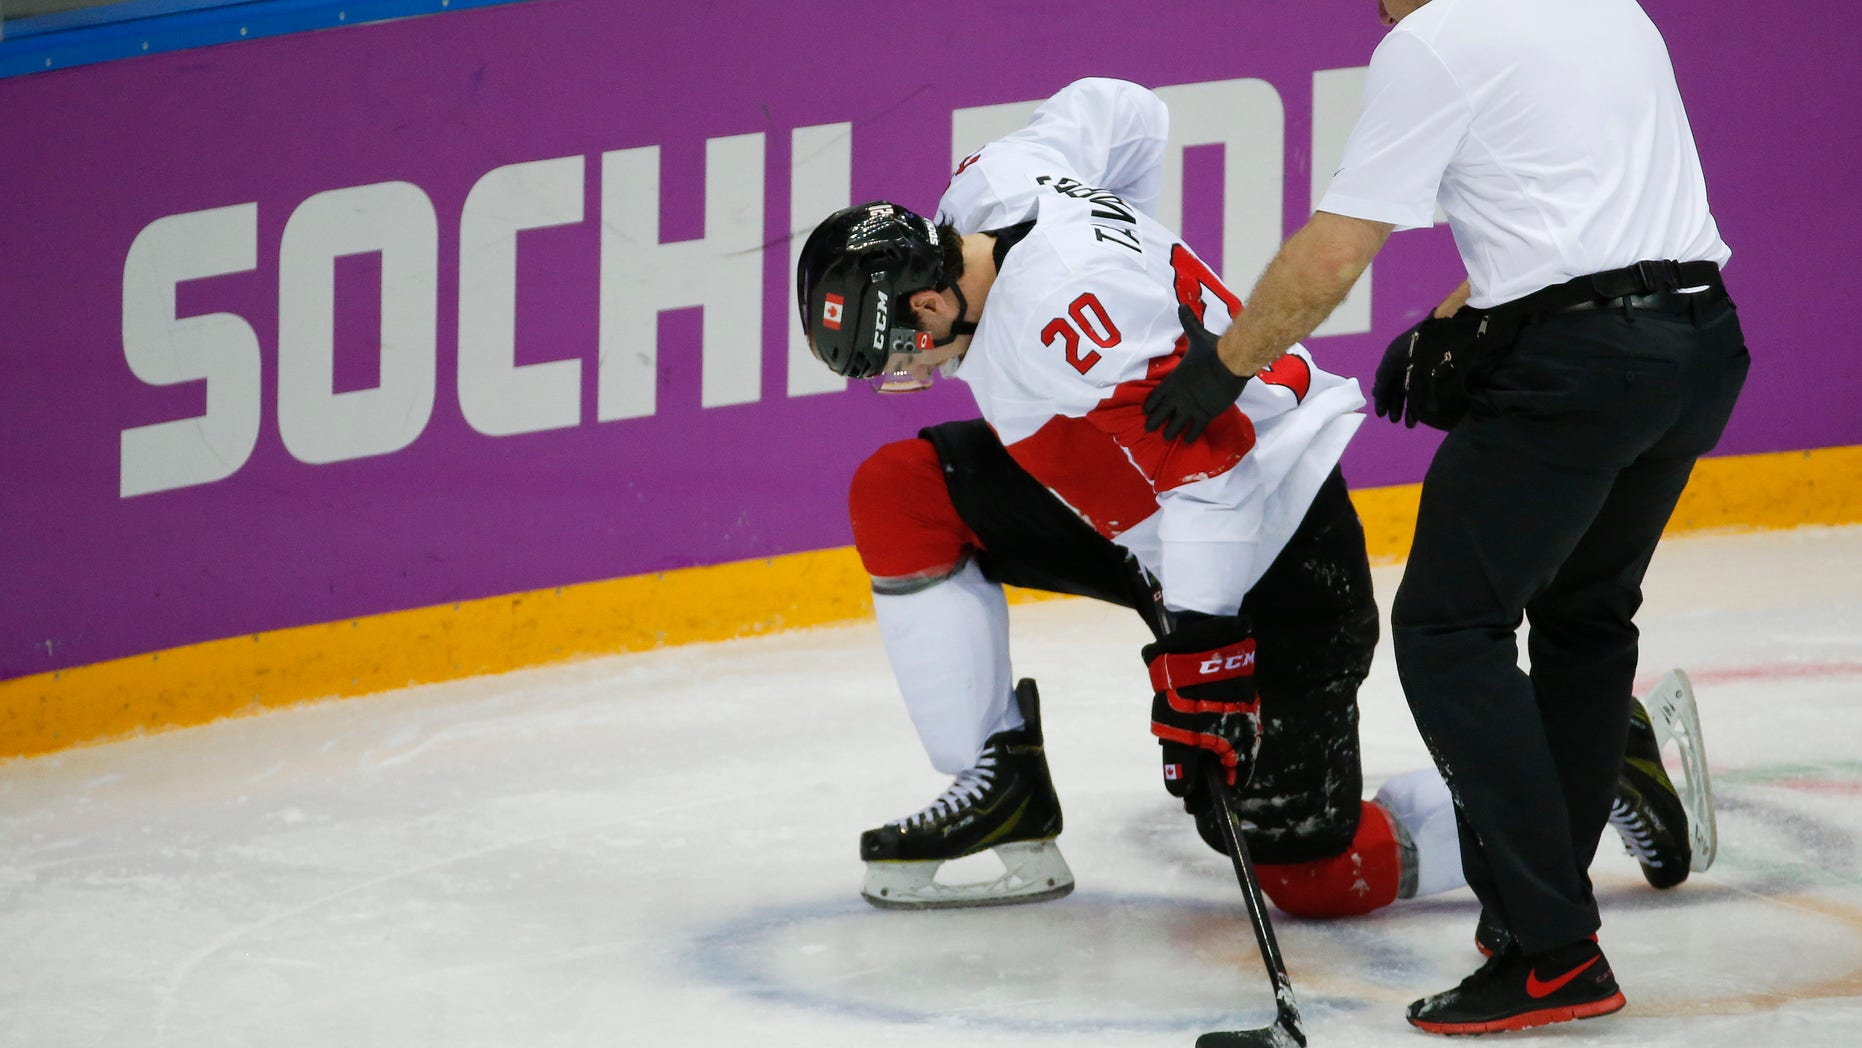 Canada forward John Tavares is helped up off the ice by a trainer during the second period of a men's quarterfinal ice hockey game against Latvia at the 2014 Winter Olympics, Wednesday, Feb. 19, 2014, in Sochi, Russia. Tavares is out for the rest of the Olympics with an unspecified leg injury. (AP Photo/Mark Humphrey)